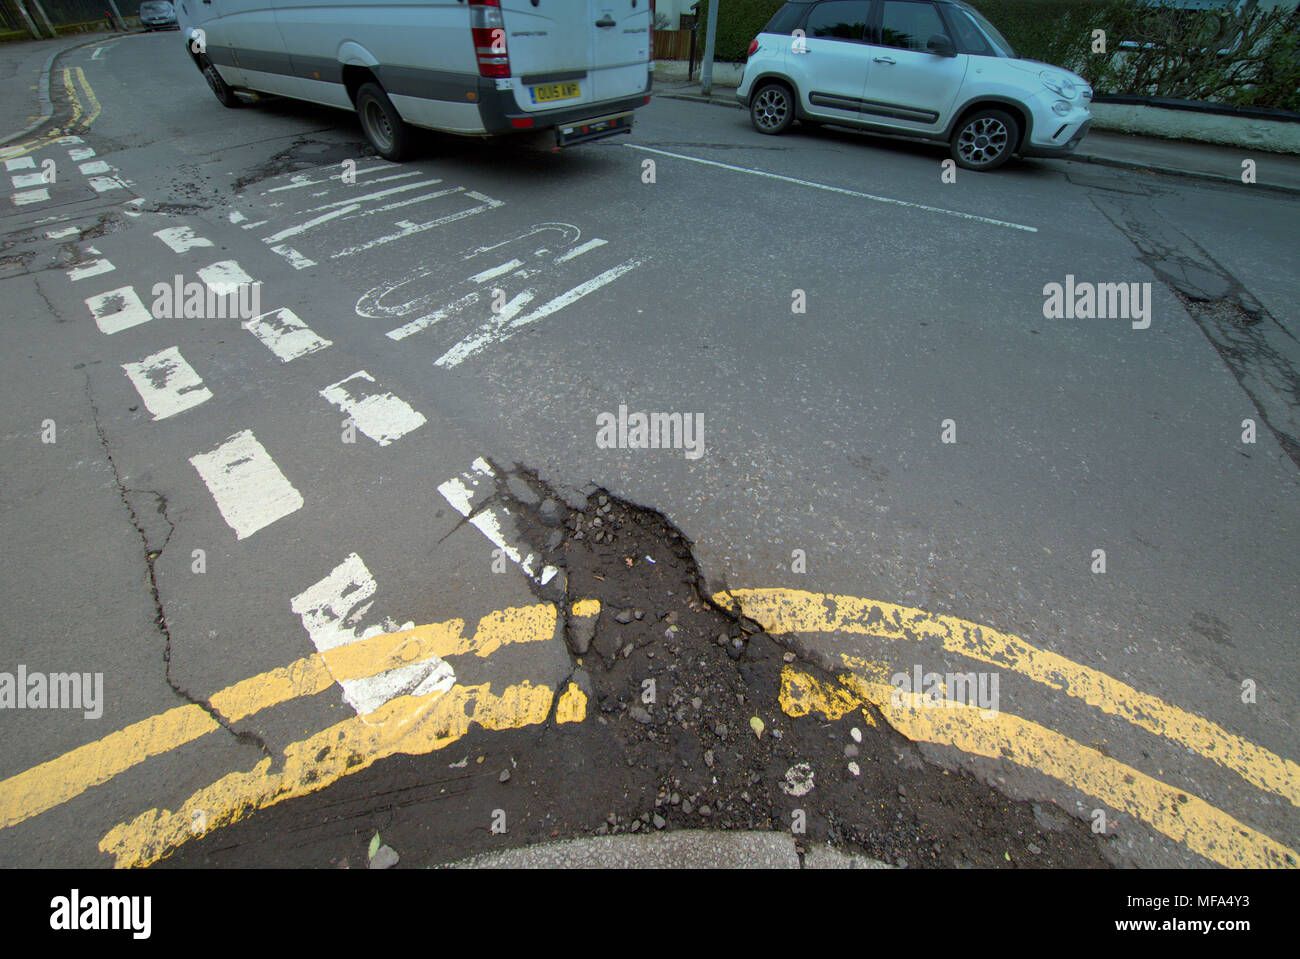 pot holes damaged road  car cars on street with  double yellow lines no entry markings Stock Photo